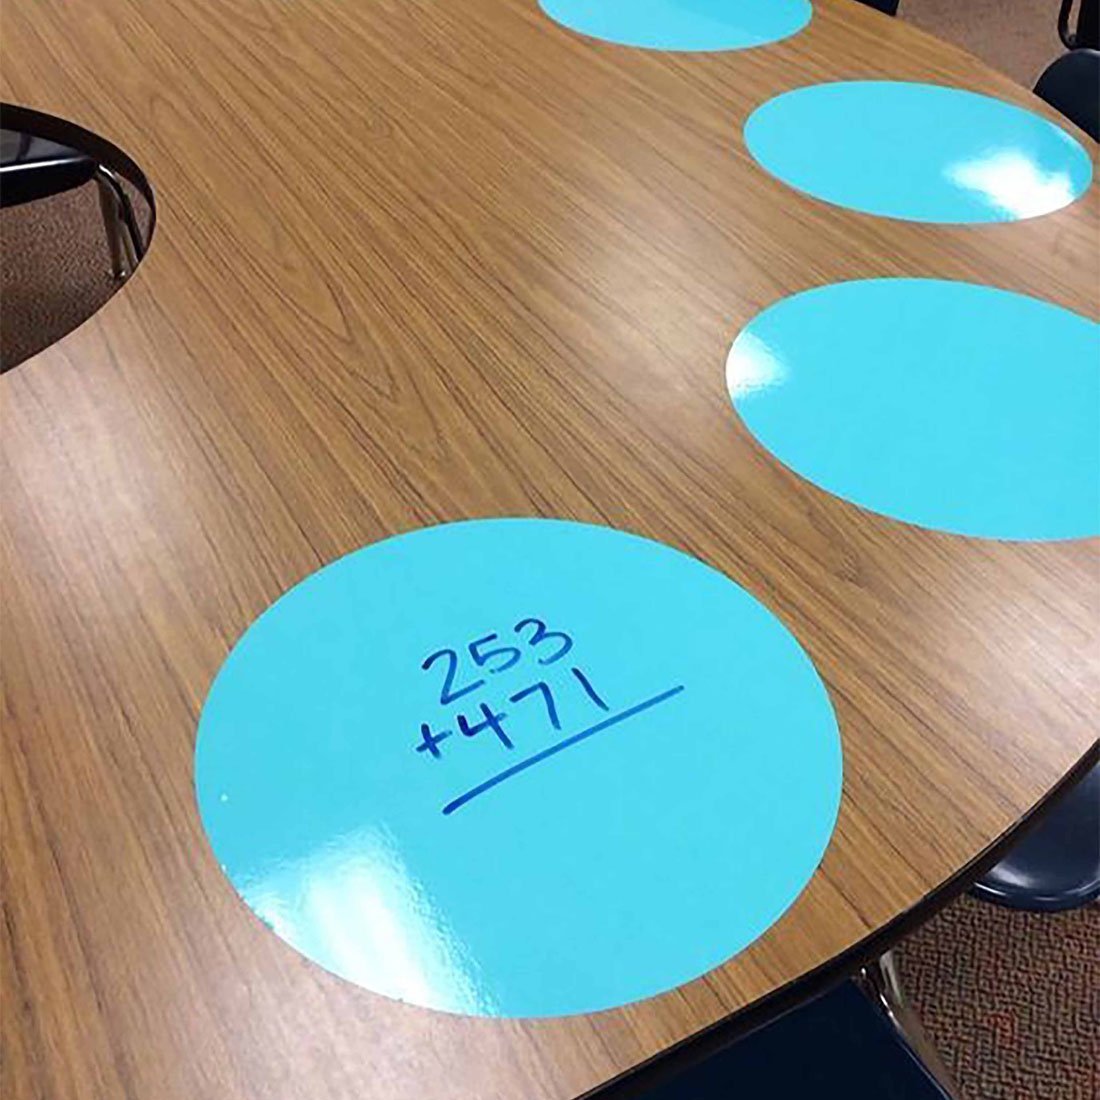 math-problems-written-on-blue-place-mats-on-table.jpg